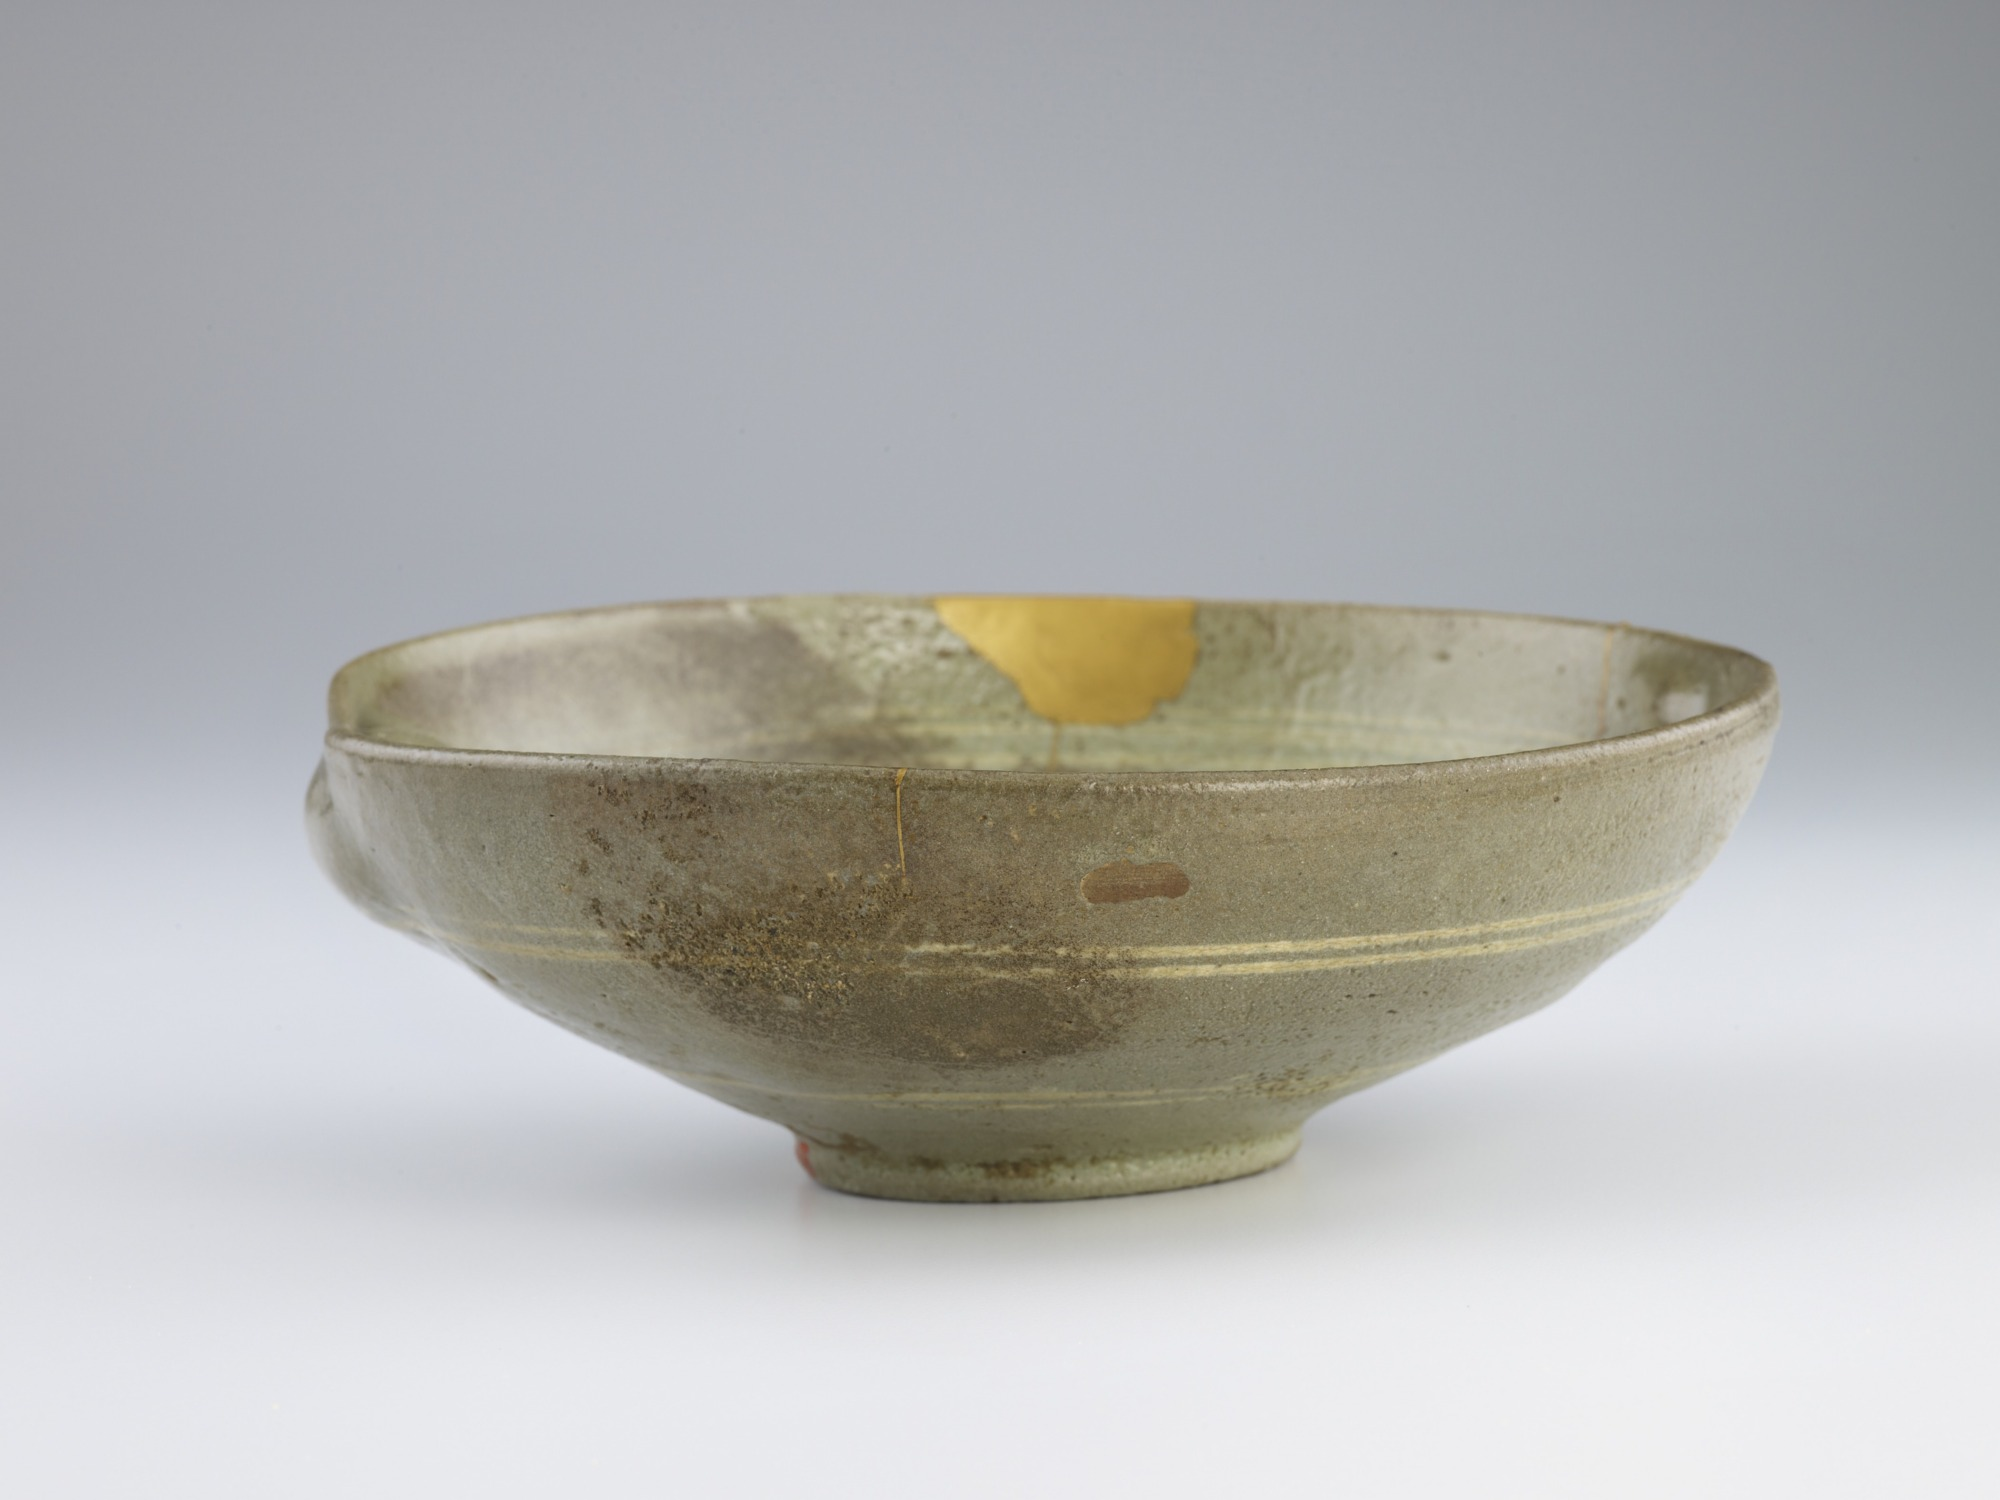 Bowl with inlaid design of willow trees, ducks, and grass, profile